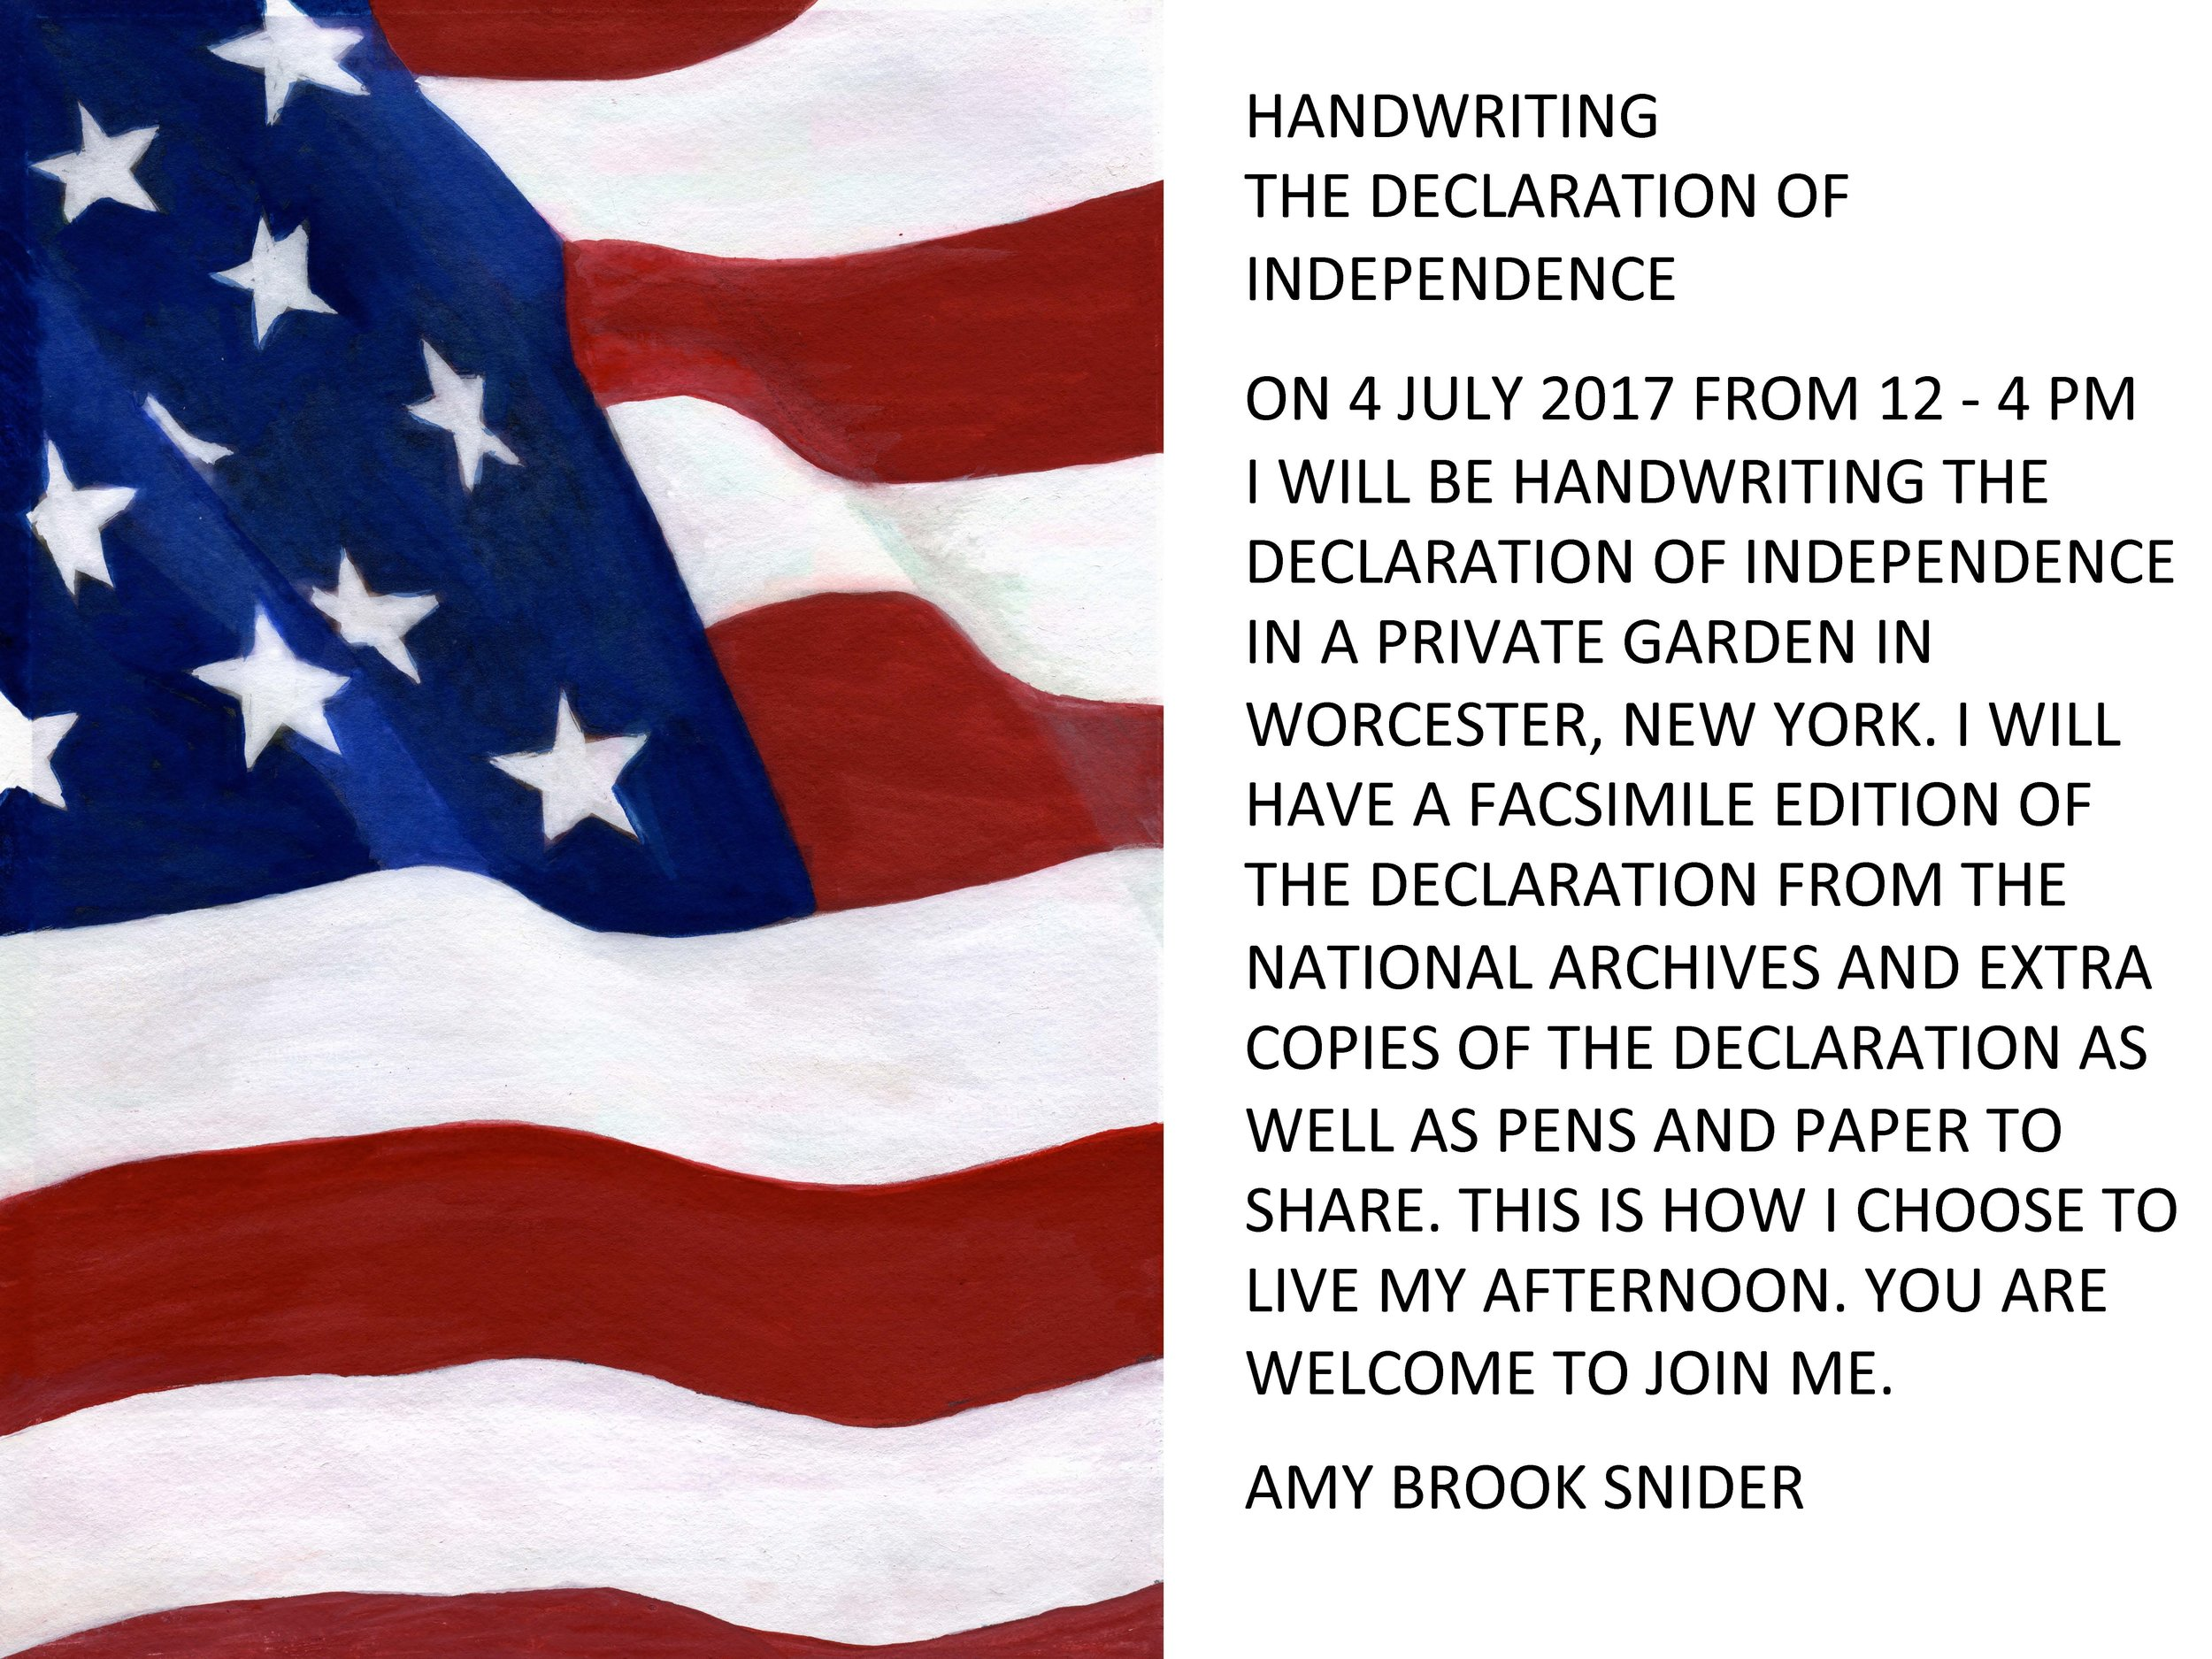 4 july 2017independence dayworcester, Ny - collaborator amy brook snider